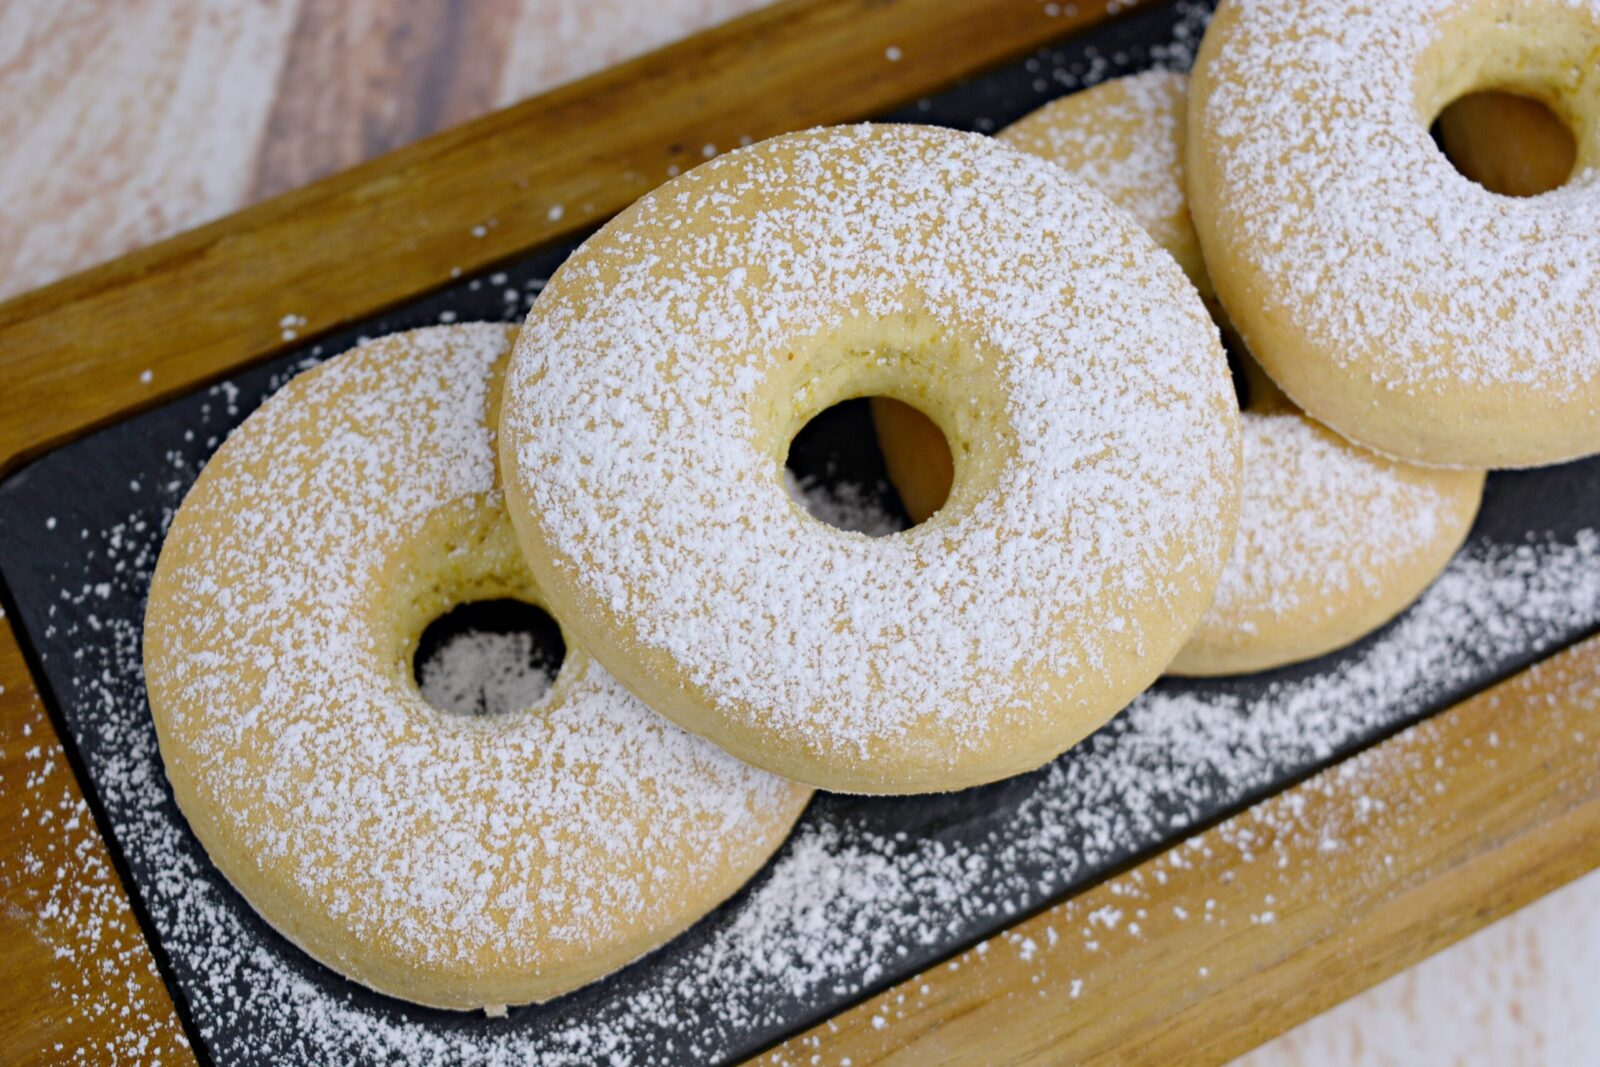 Homemade donuts with lemon